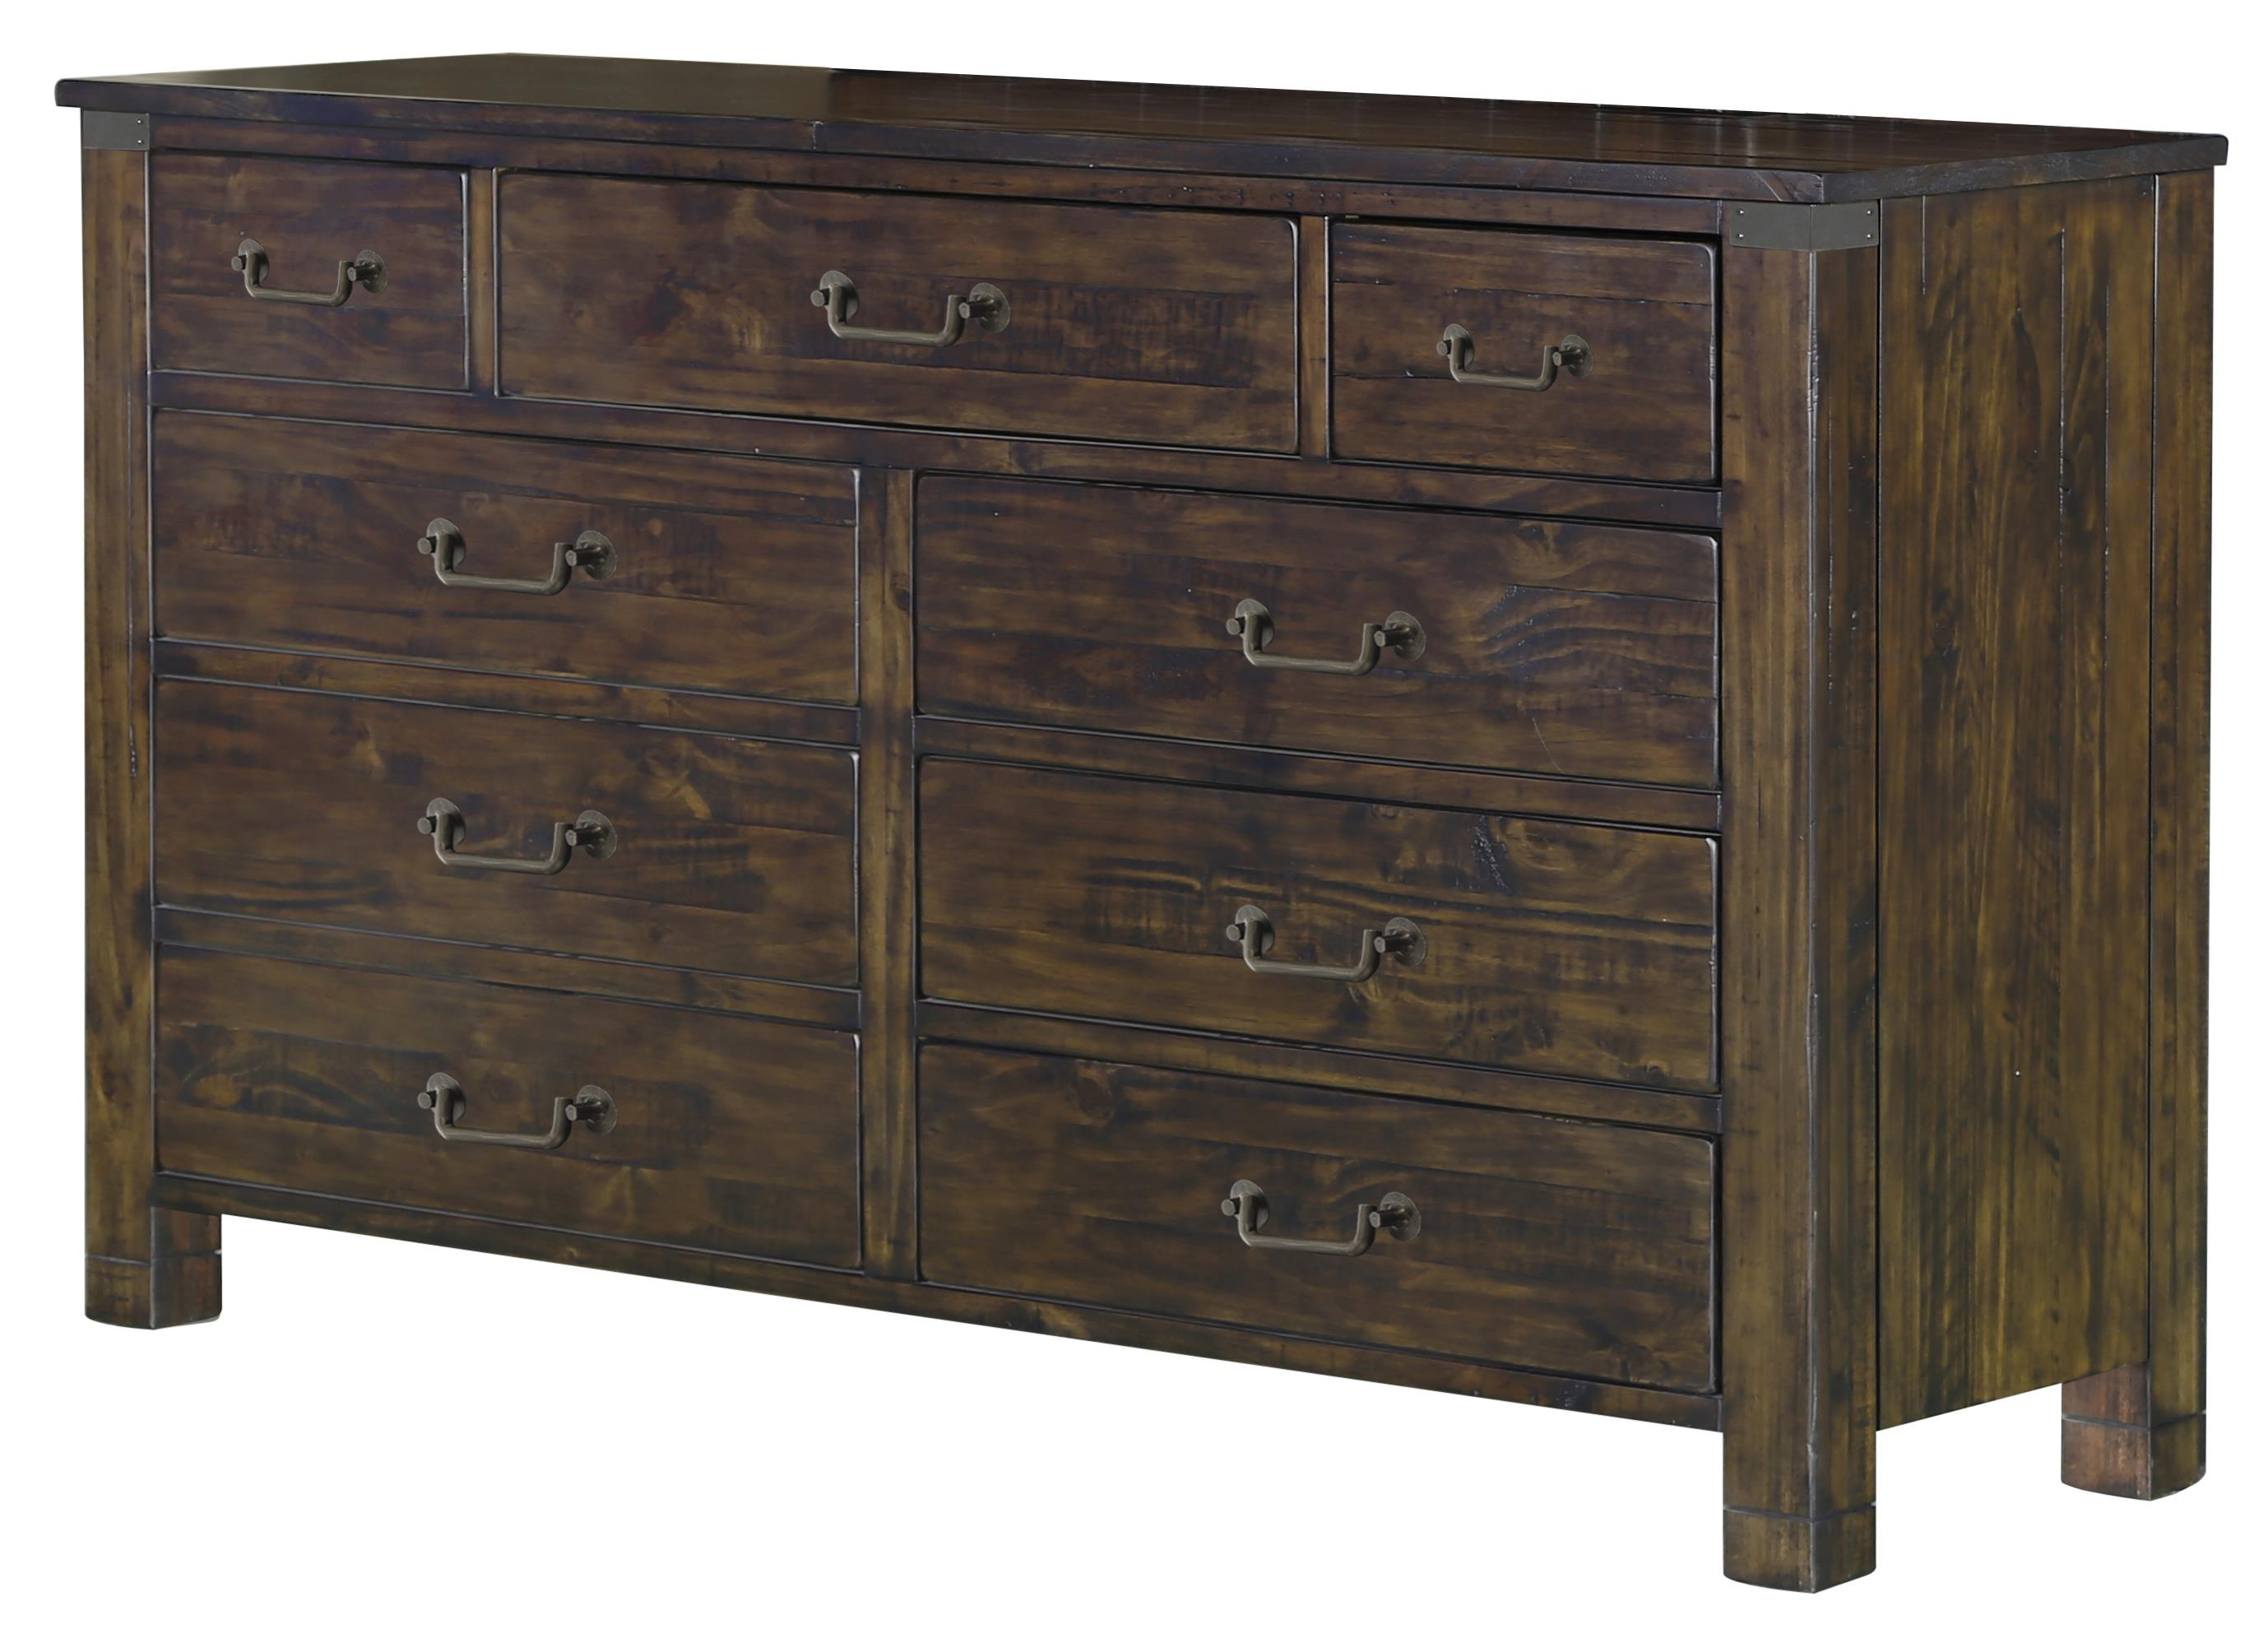 9 Drawer Dresser in Rustic Pine Finish